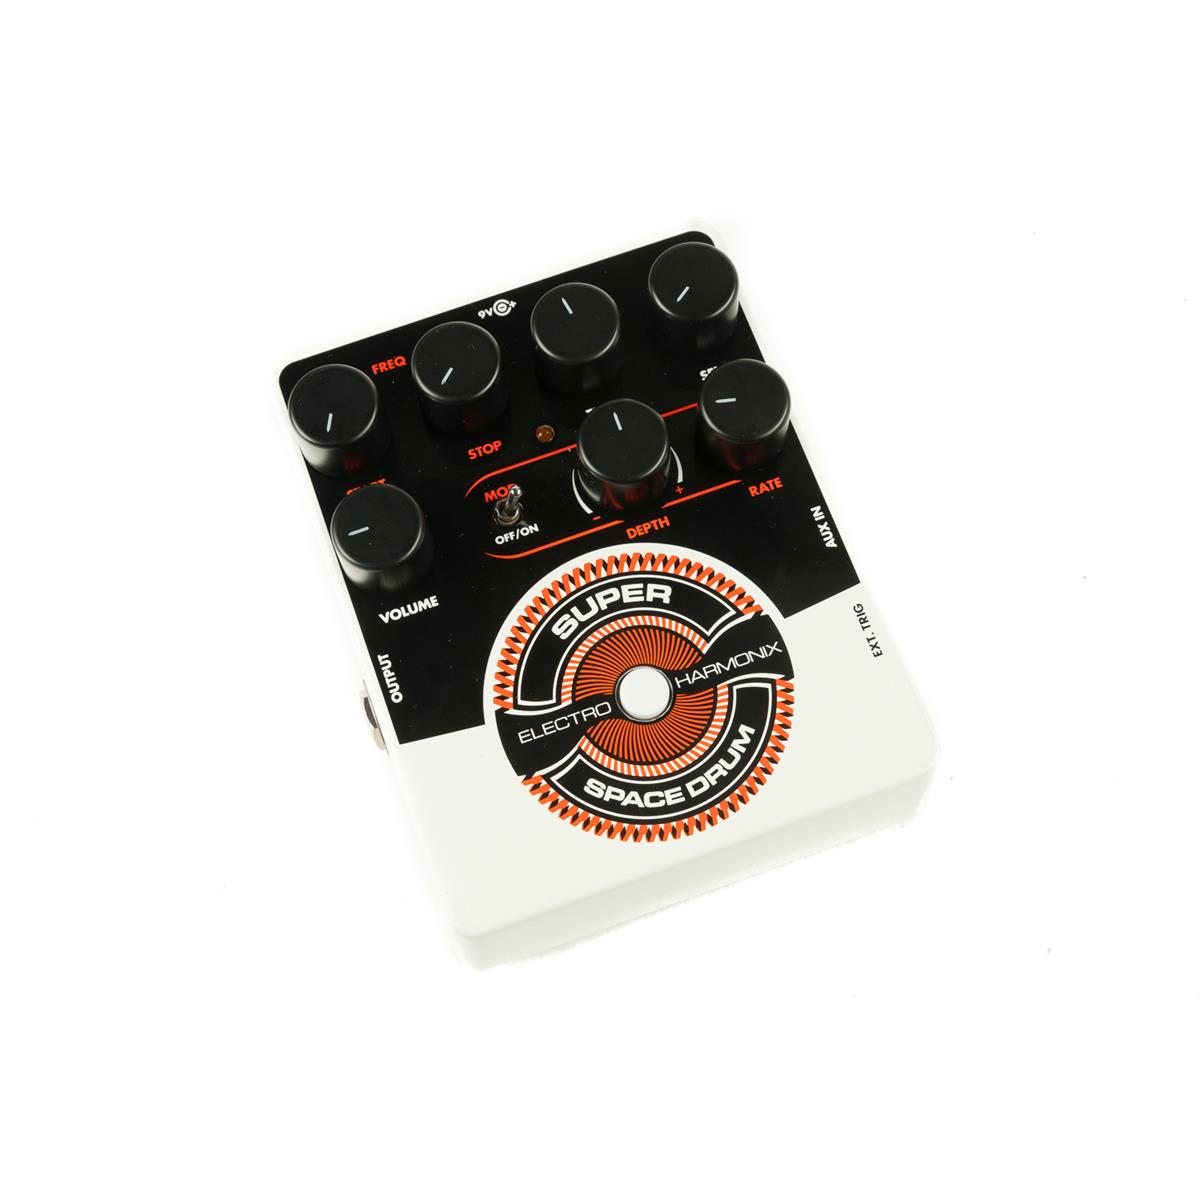 ELECTRO HARMONIX SUPER SPACE DRUM - Batterie / Percussioni Batterie Elettroniche